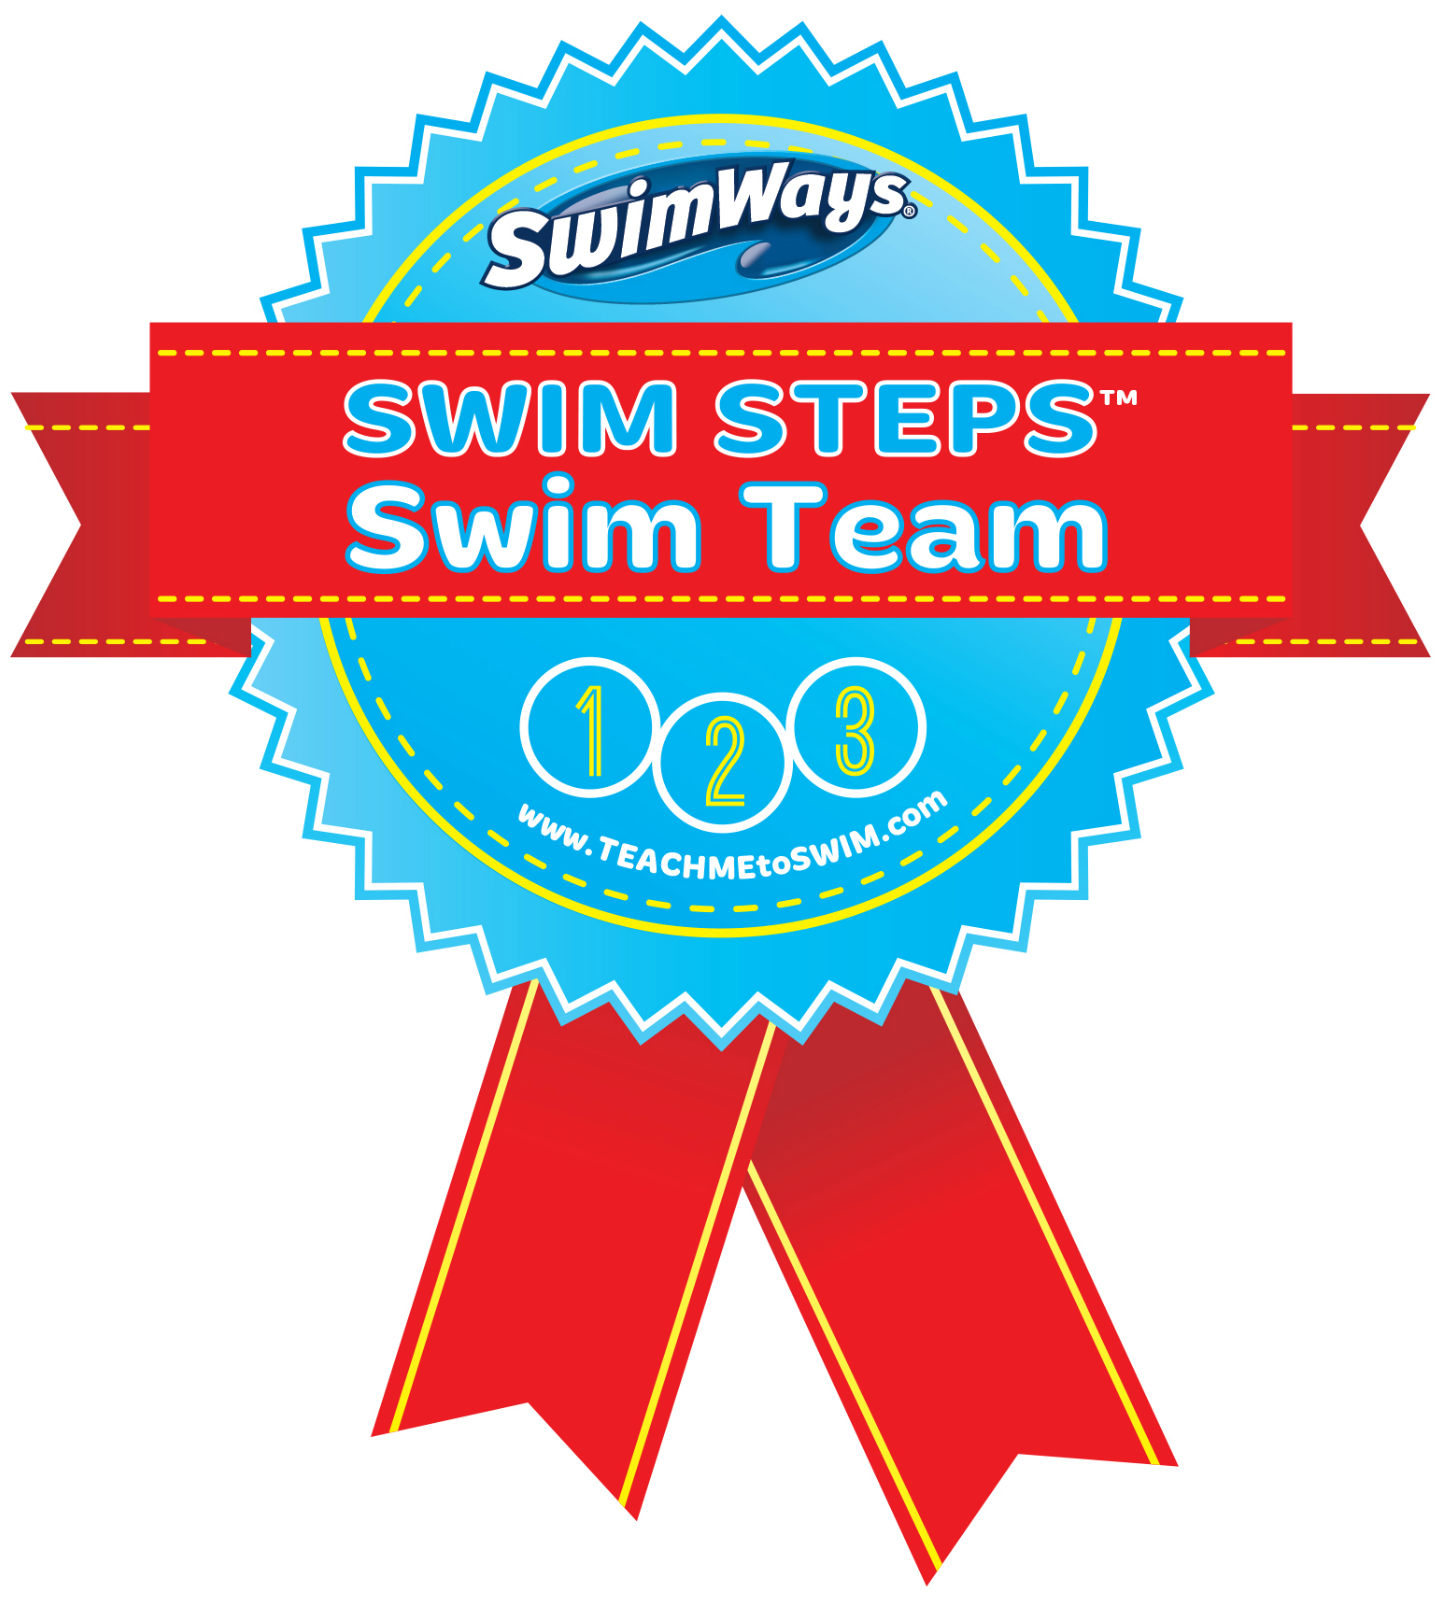 SwimWays Swim Steps Swim Team